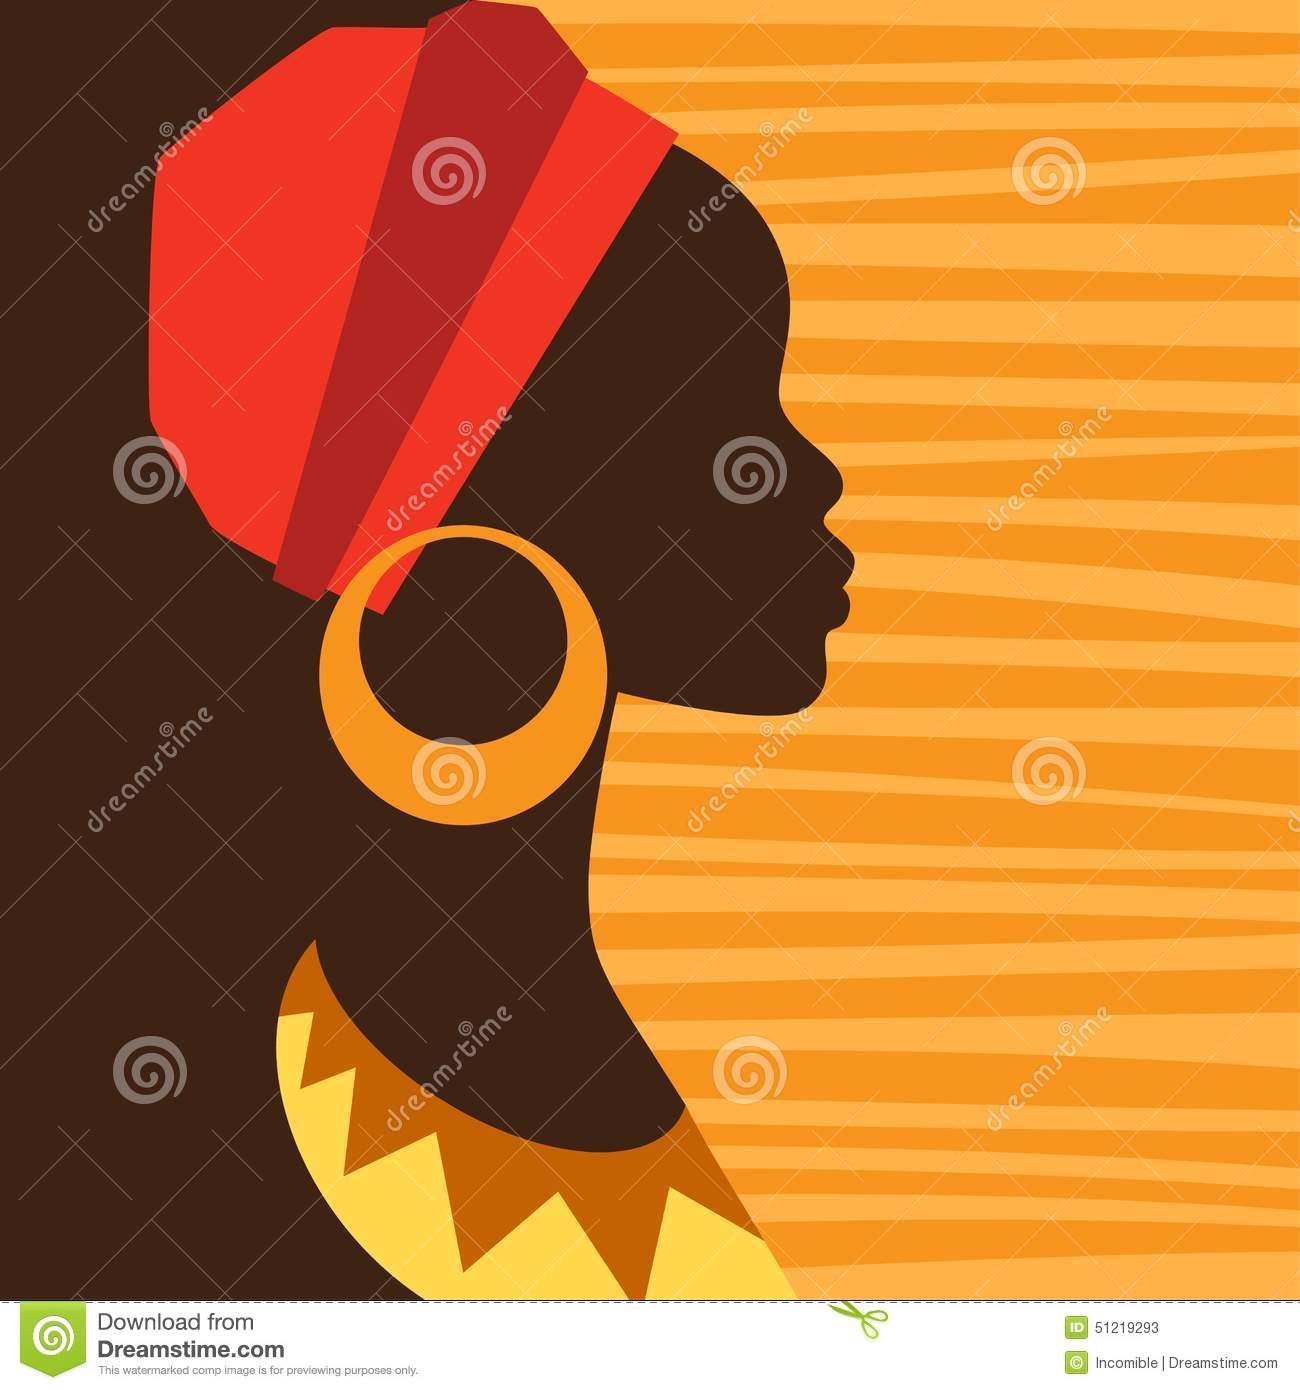 Silhouette Of African Girl In Profile With Stock Vector ...